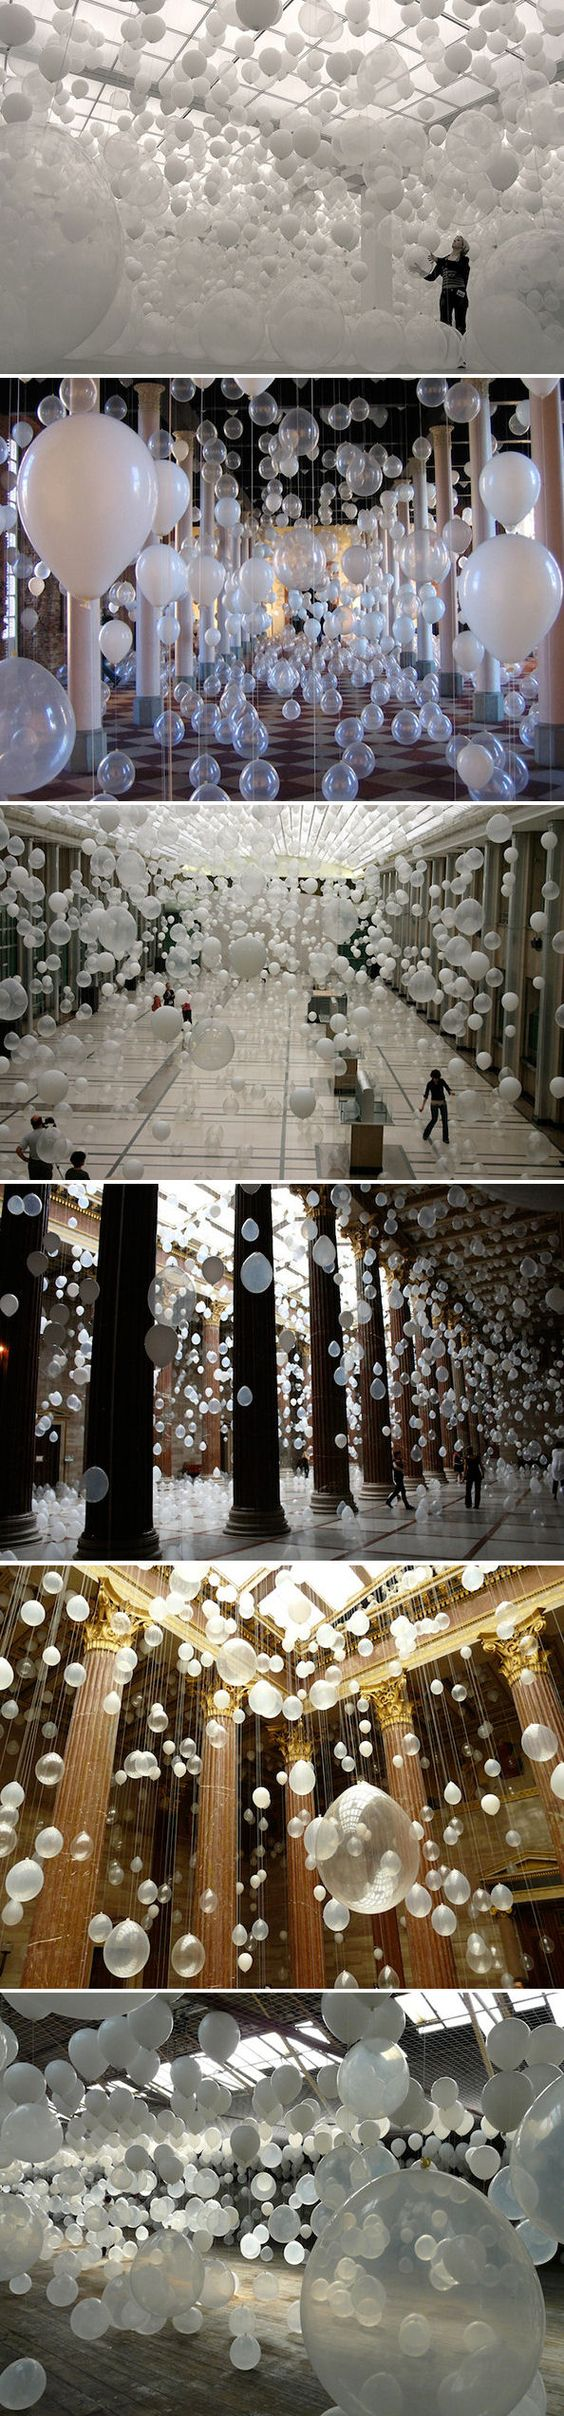 """william forsythe: scattered crowds (2012). thousands of white balloons are suspended in the air, accompanied by a wash of music, emphasizing """"the air-borne landscape of relationships, distance, of humans and emptiness, of coalescence and decision""""."""